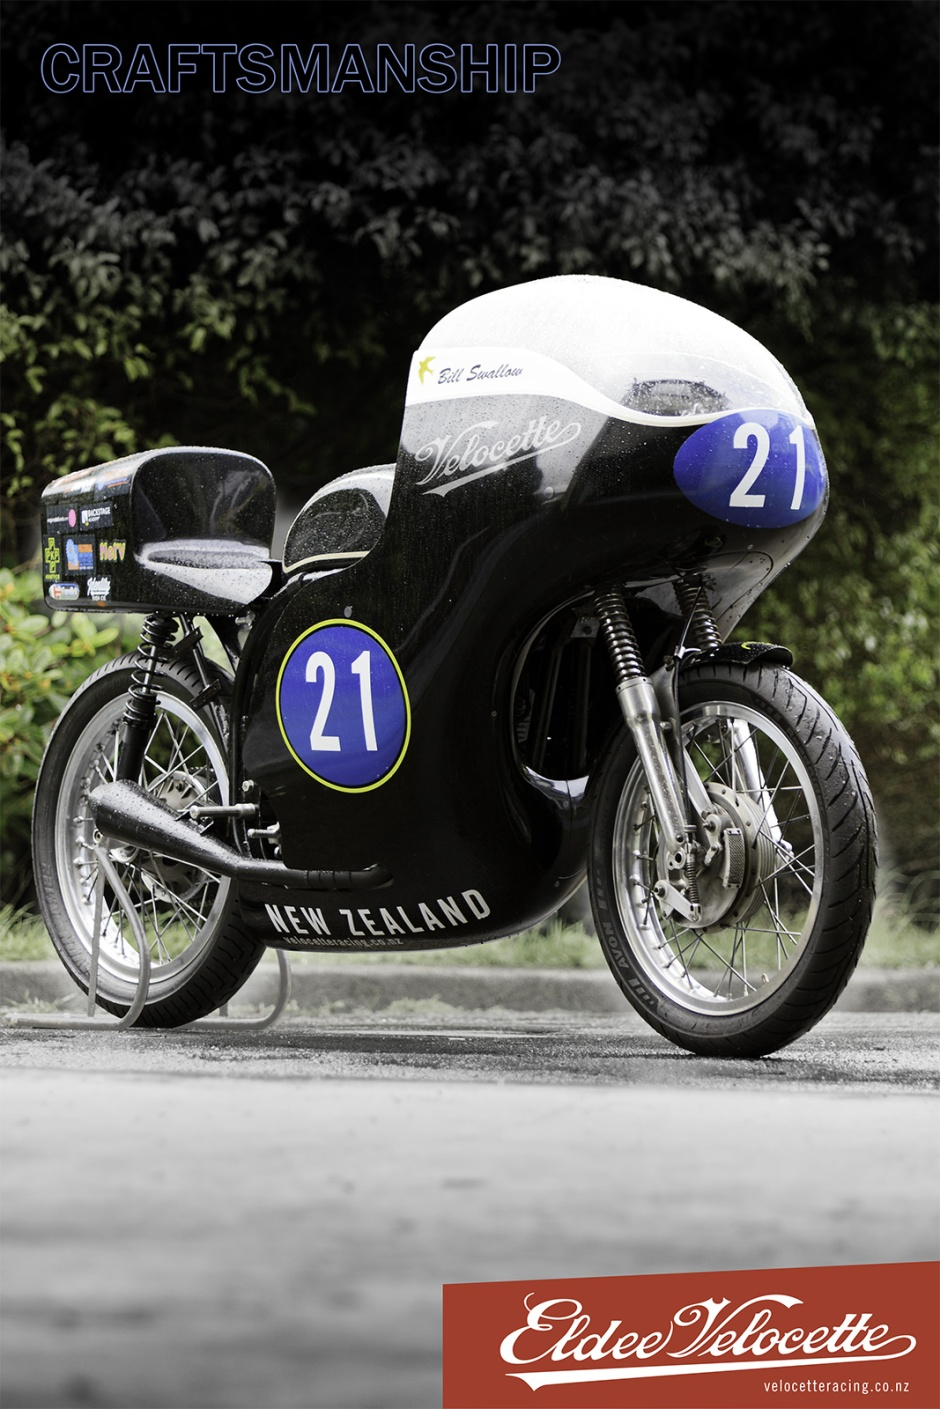 Eldee Velocette, front three-quarter, poster, A2, portrait, Craftsmanship, carbon fibre seat, petrol tank and fairing, rider, Bill Swallow, flying swallow mark, publicity photo, photographer, Shaun Waugh, MagentaDot Brands, ram air fairing